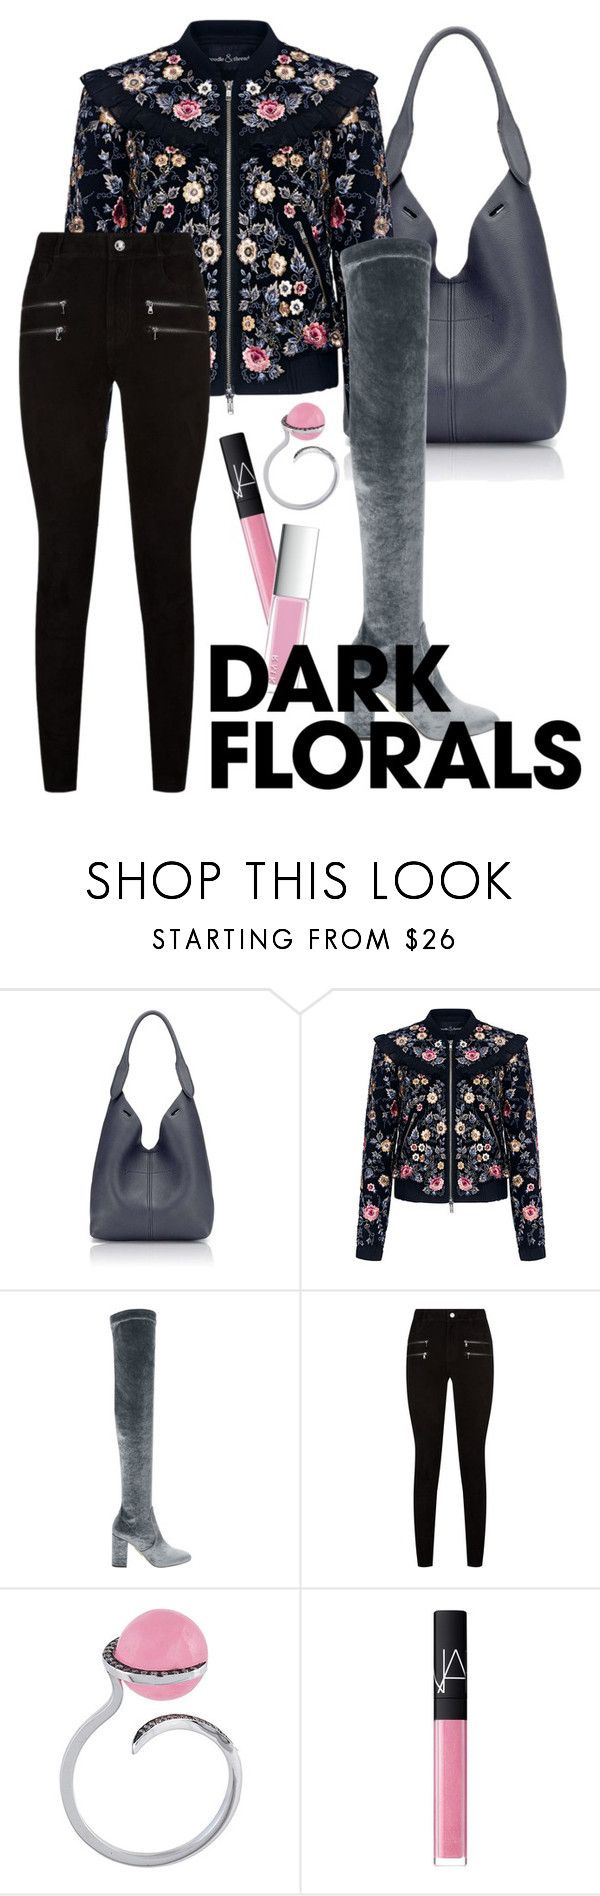 """""""winter flowers"""" by accidentaly-tragic ❤ liked on Polyvore featuring Anya Hindmarch, Needle & Thread, Aquazzura, Paige Denim, Christina Debs, NARS Cosmetics and RMK"""